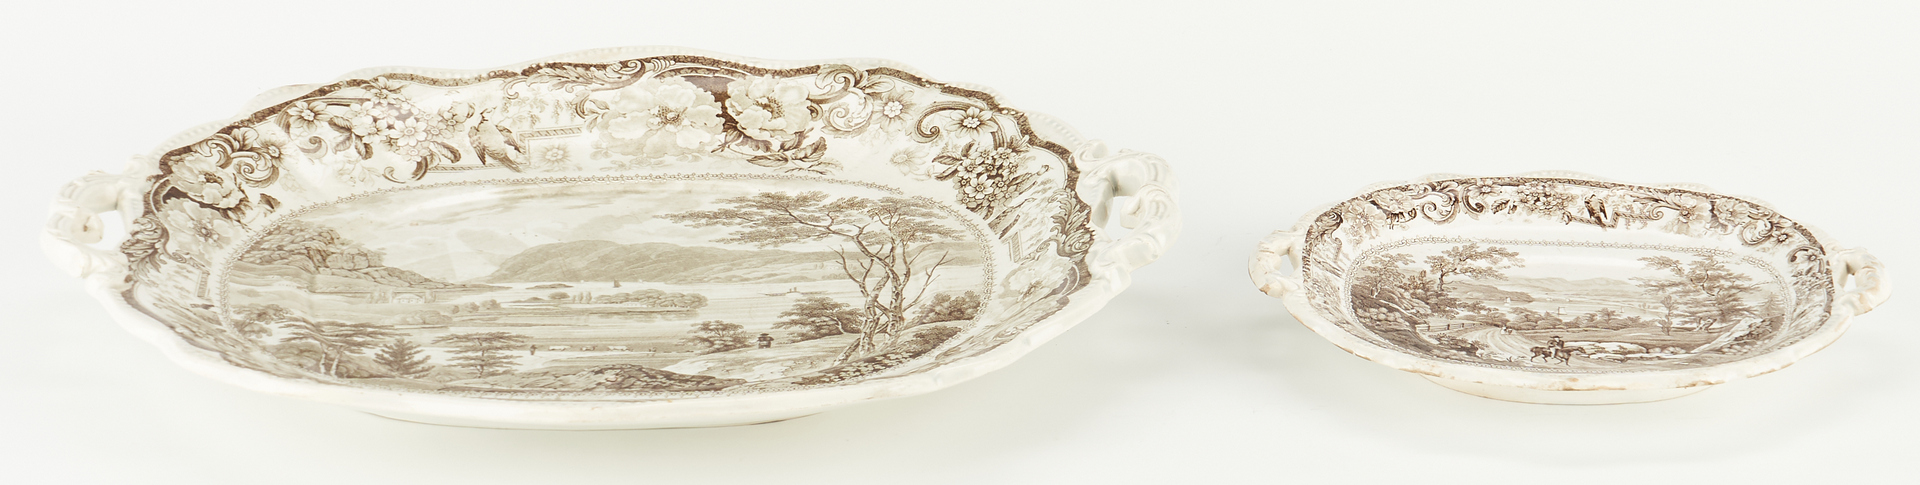 Lot 329: Two (2) Historical Staffordshire Platters, Hudson River